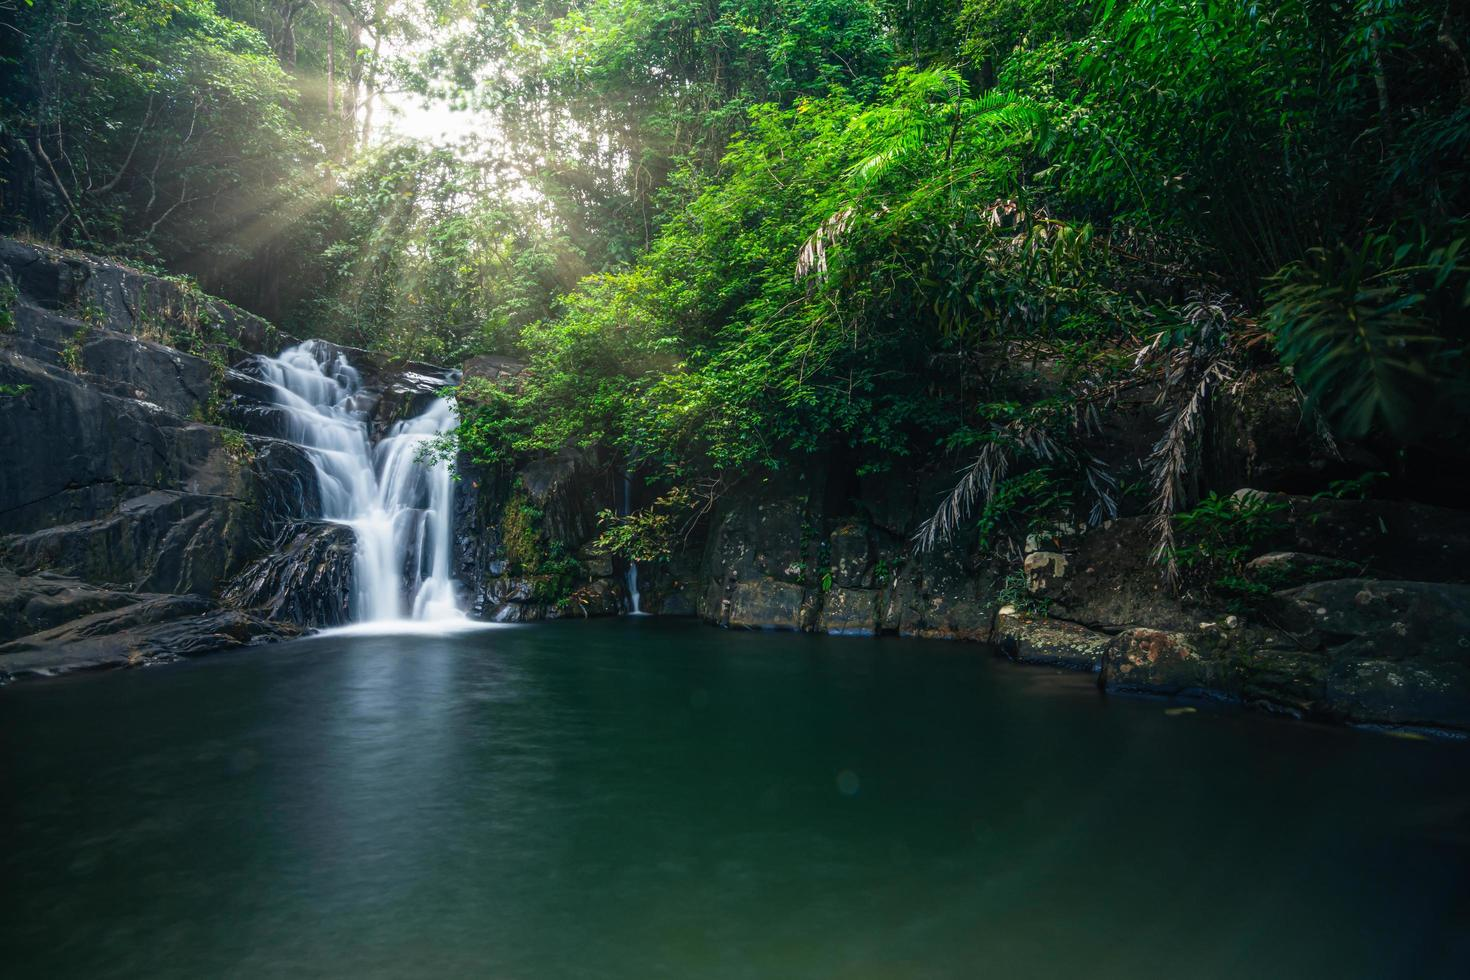 khlong pla kang waterval in thailand foto